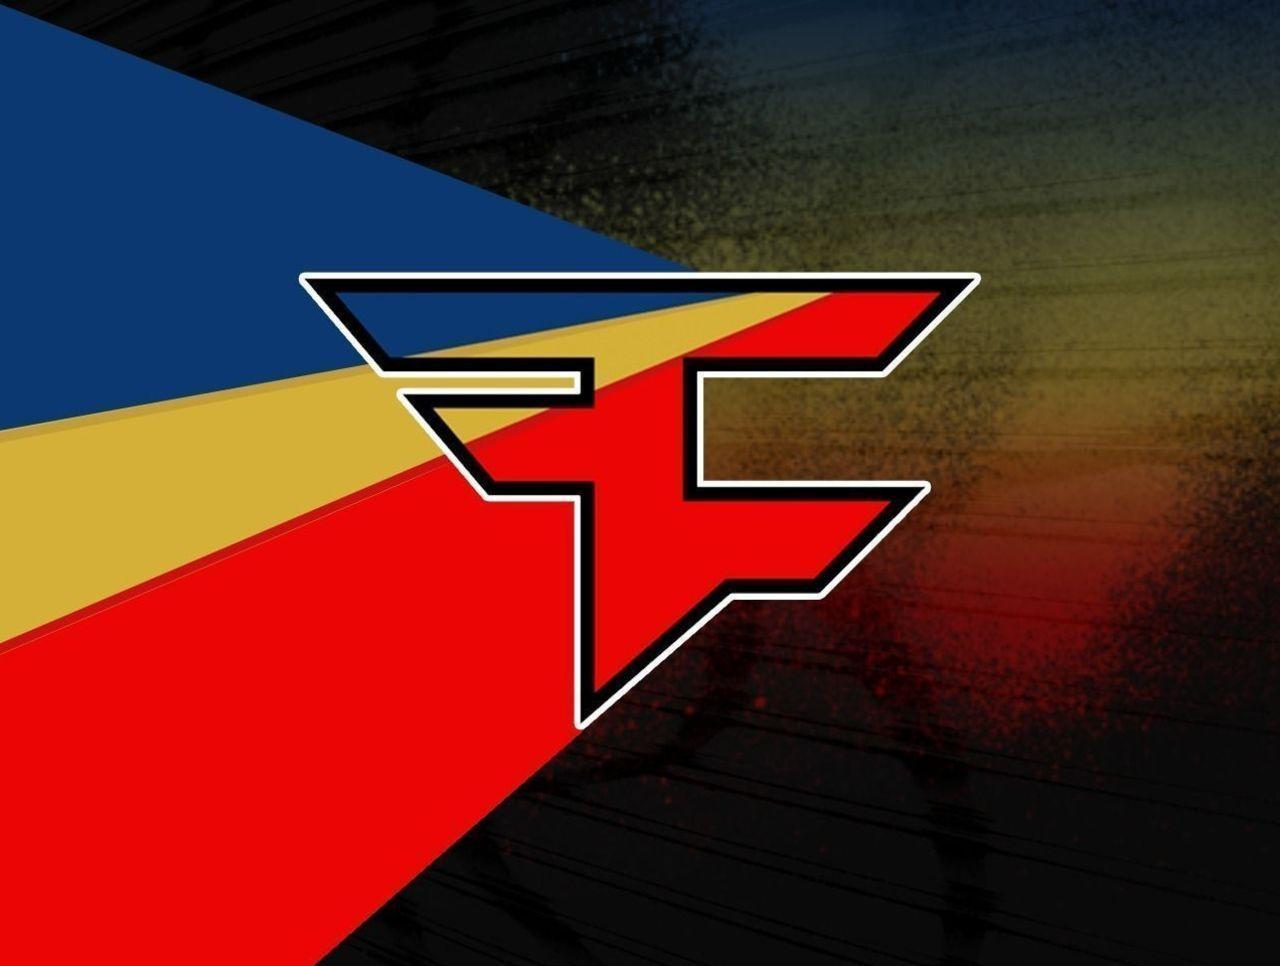 Faze Clan Wallpapers Hd